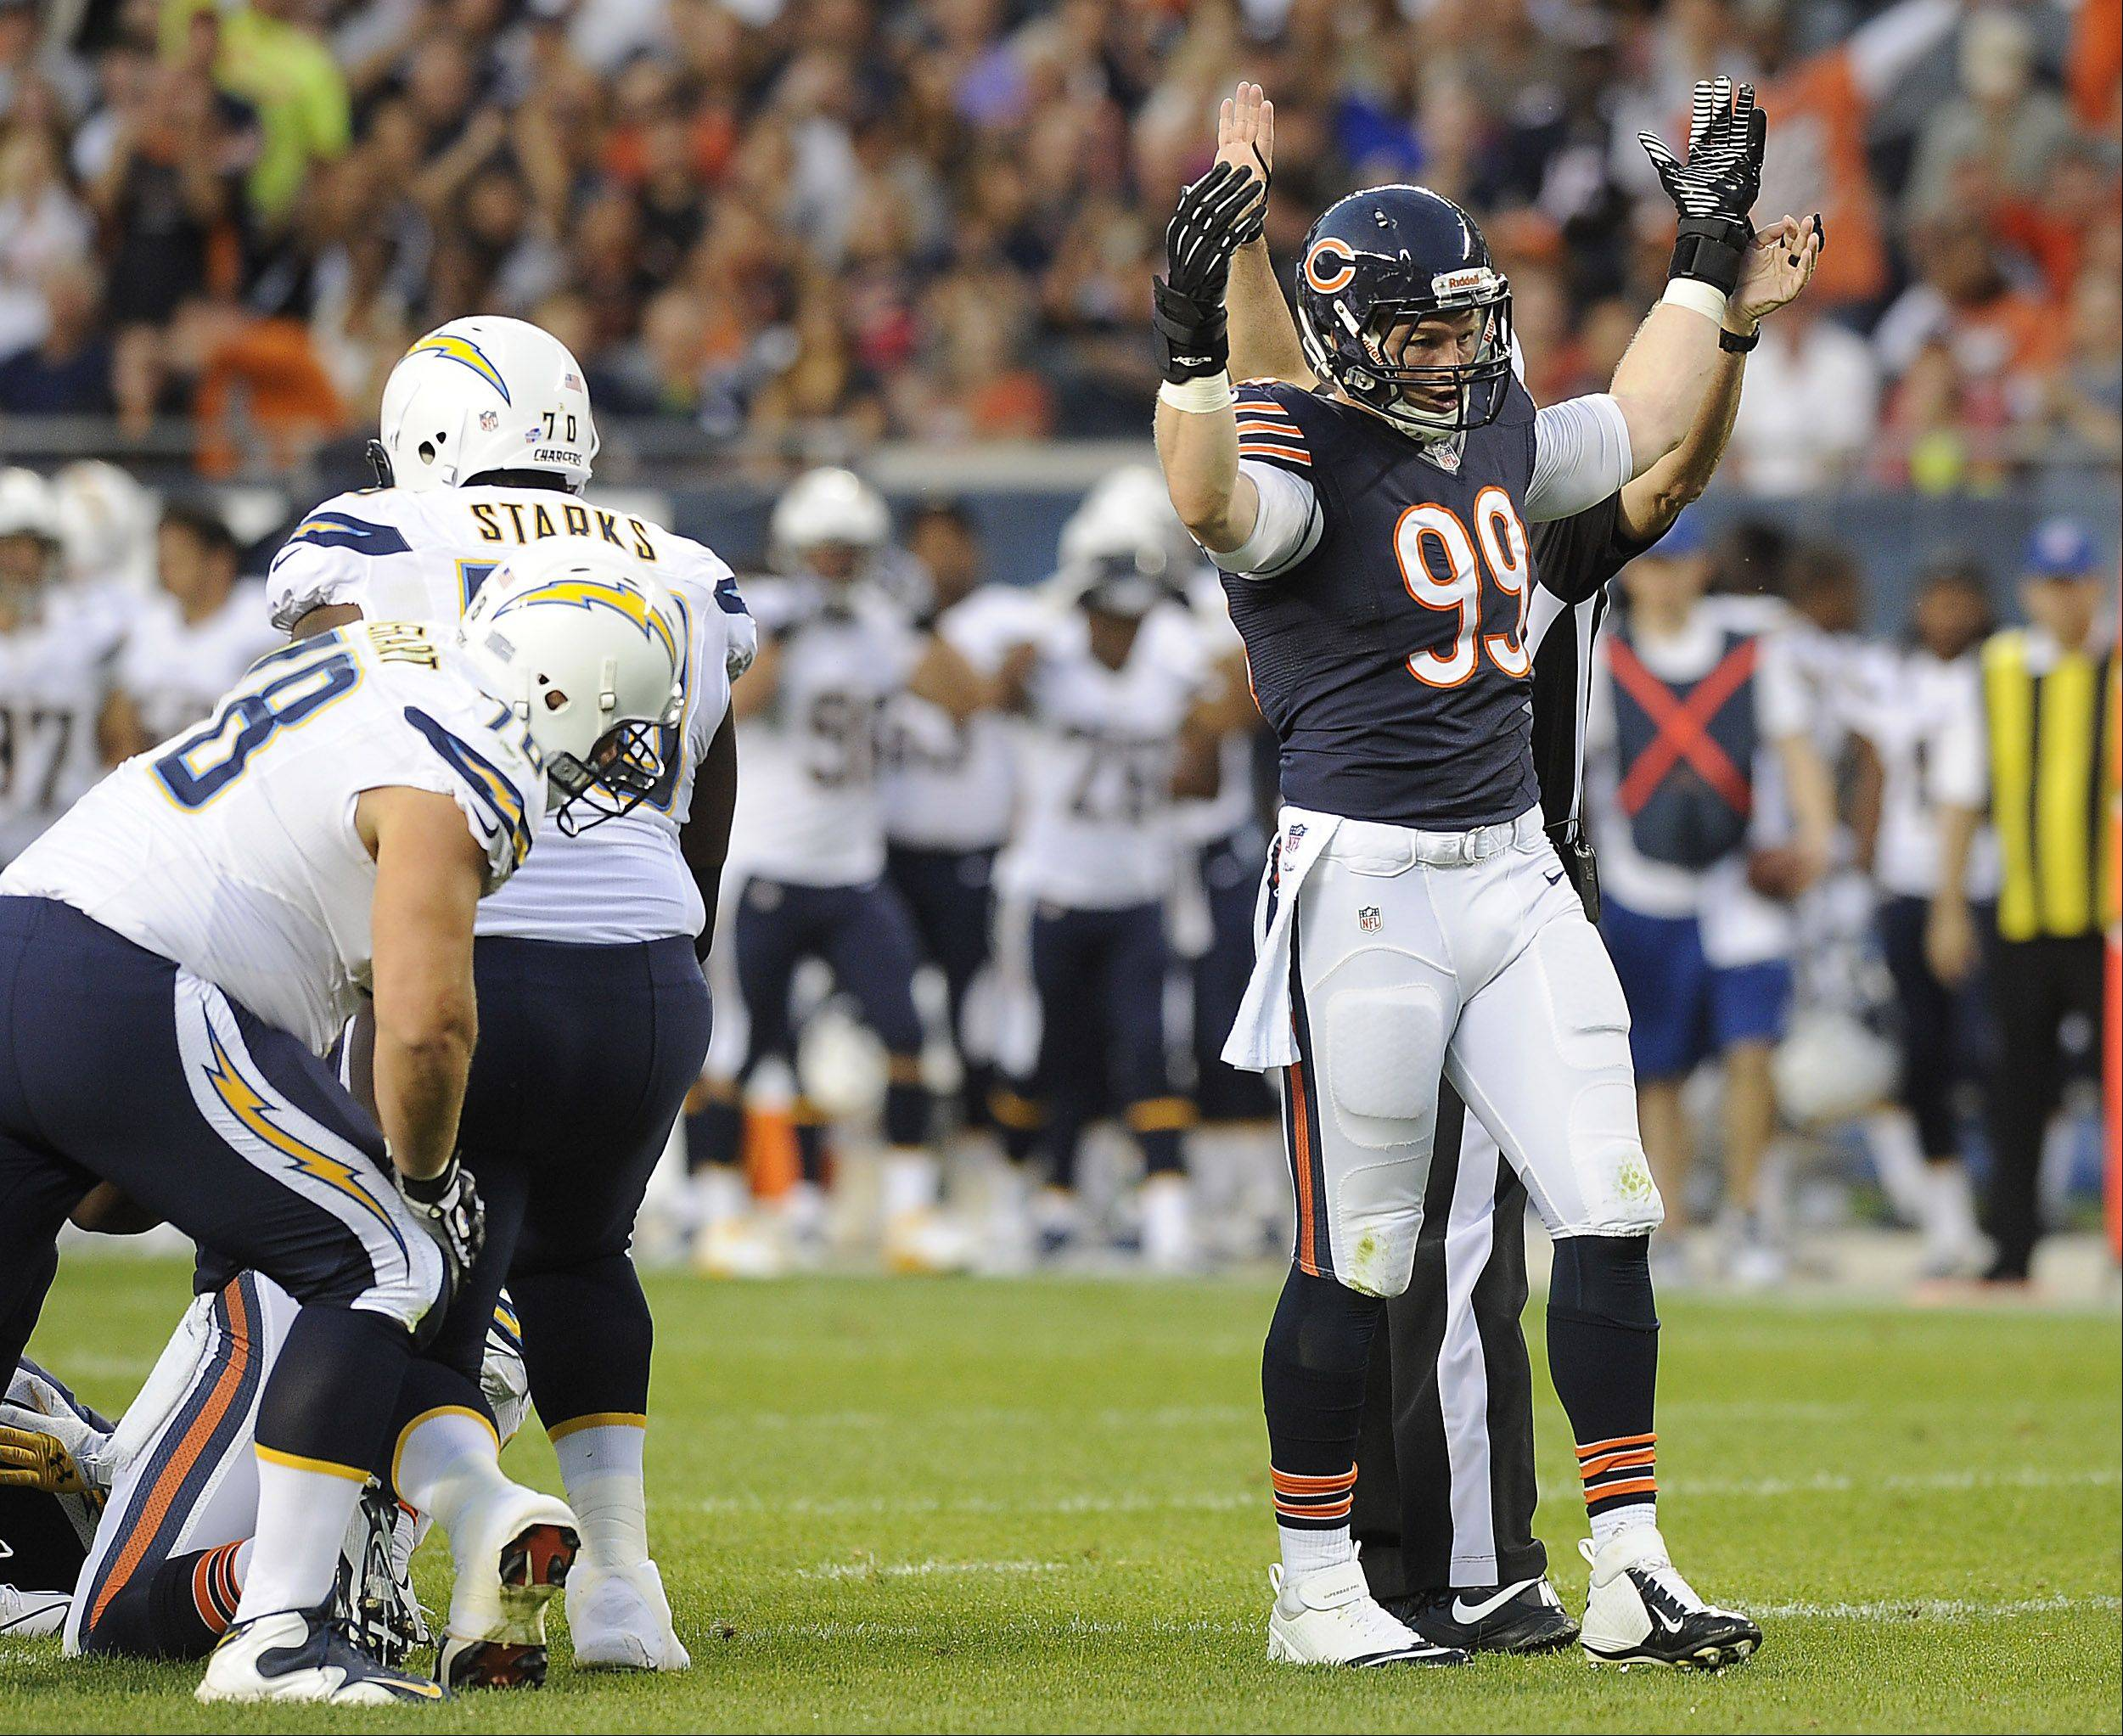 The Bears' Shea McClellin shows who the boss after his sack on the Chargers quarterback.